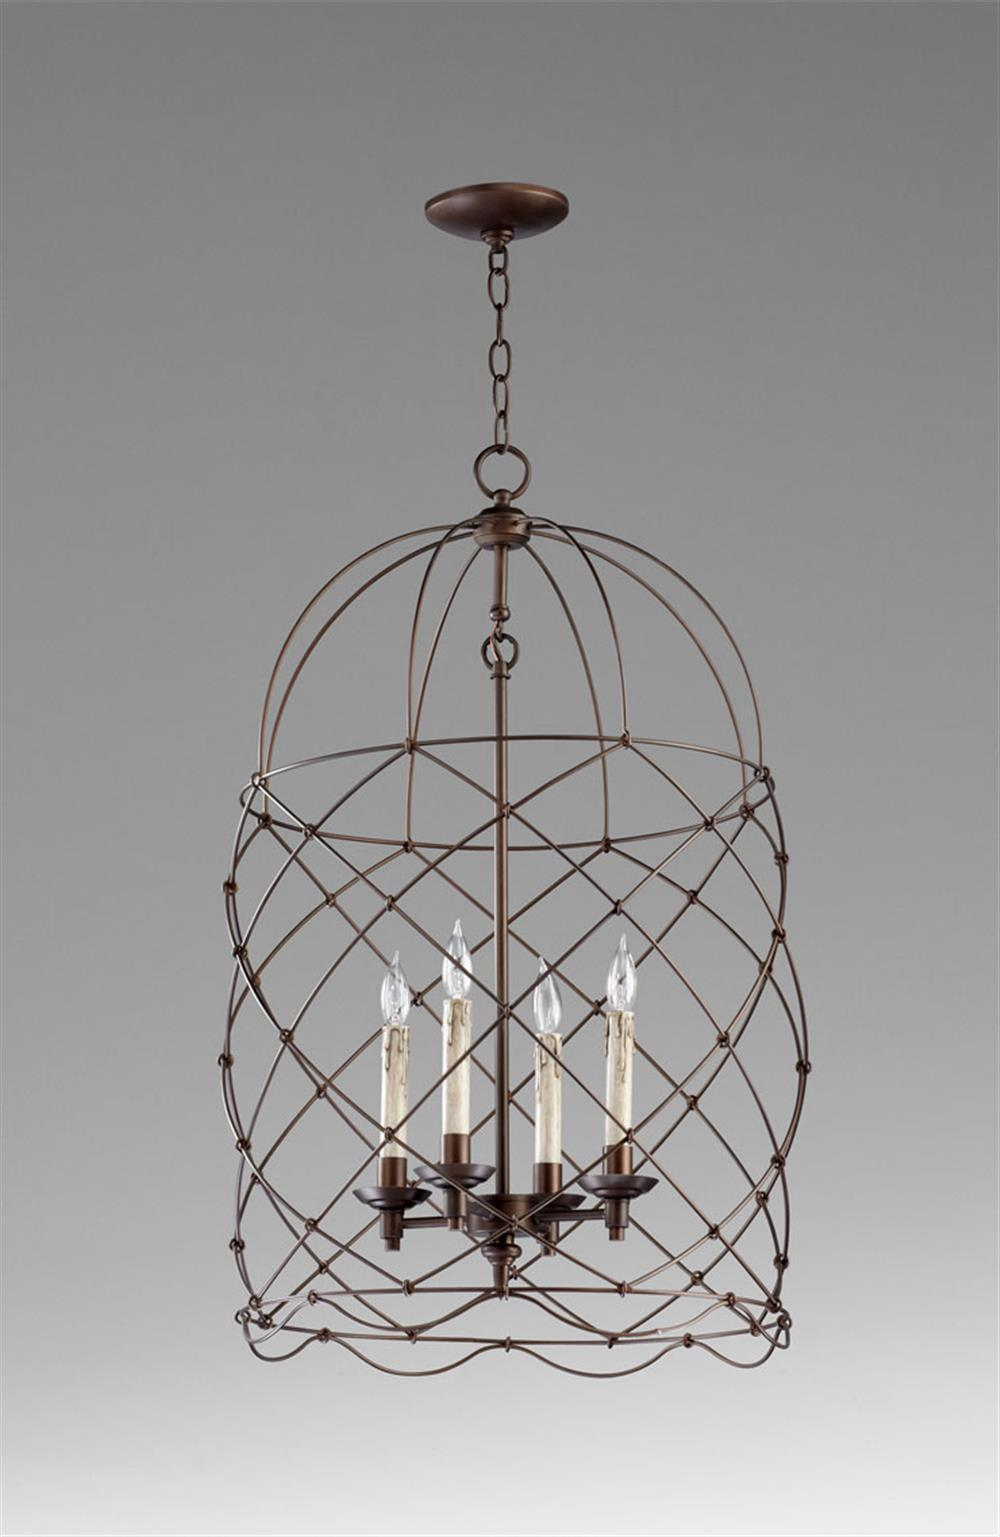 adele oil rubbed bronze four light bird cage chandelier. Black Bedroom Furniture Sets. Home Design Ideas